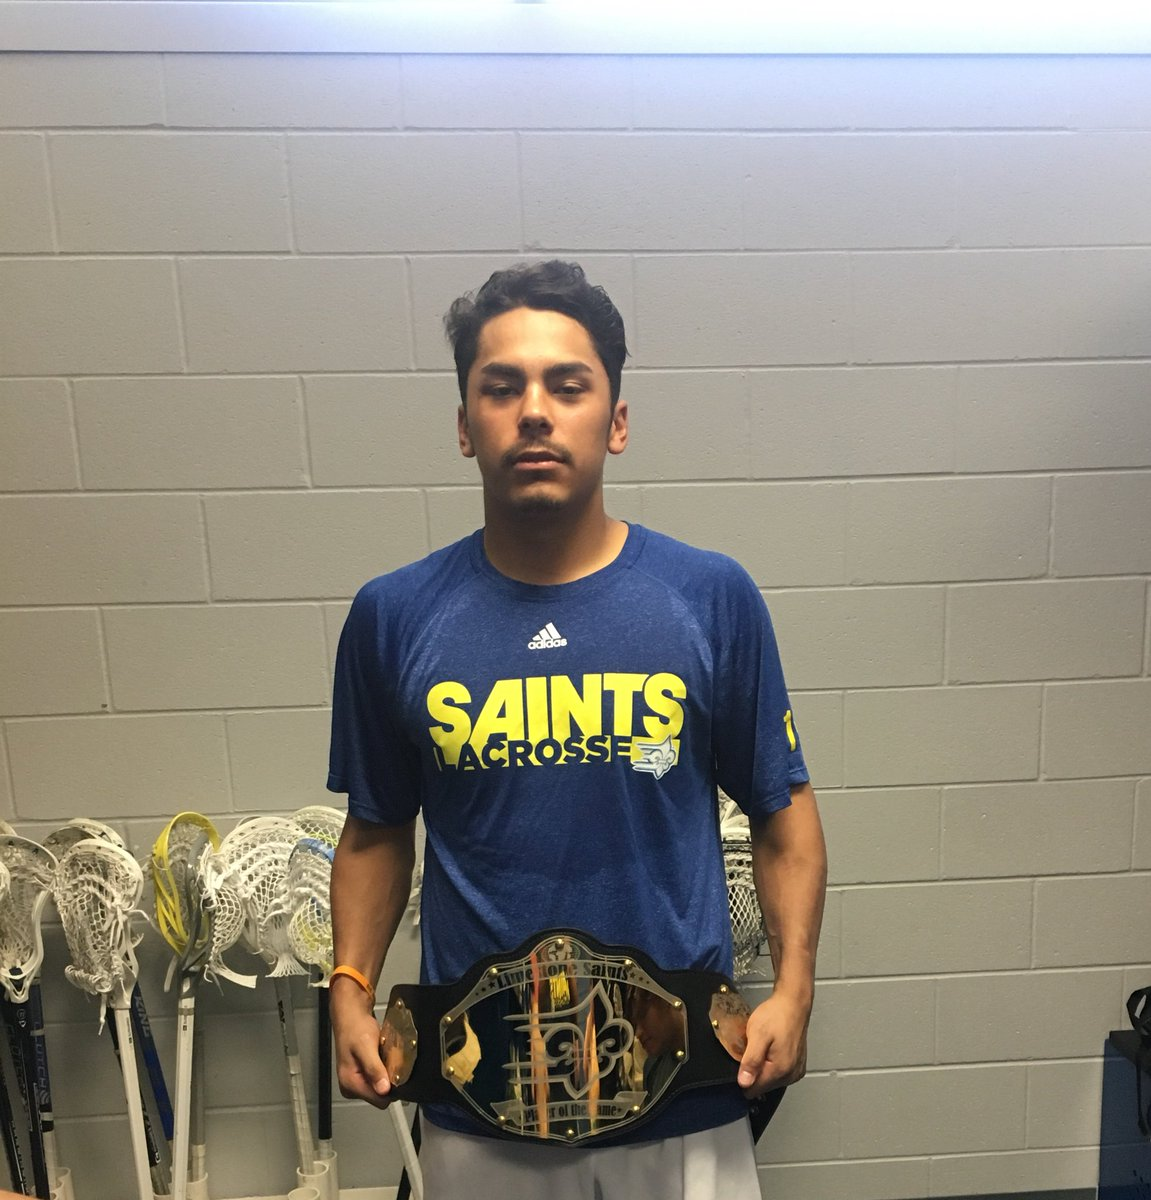 With a win over #9 Seton Hill yesterday, @LimestoneLax Heavyweight Player of the game is...  Larson Sundown @TheRealLarsonS who chipped in 5 goals & 1 assist.  @JuniorAdanacs @LaxTigers @OCCLACROSSE   #TeamTogether